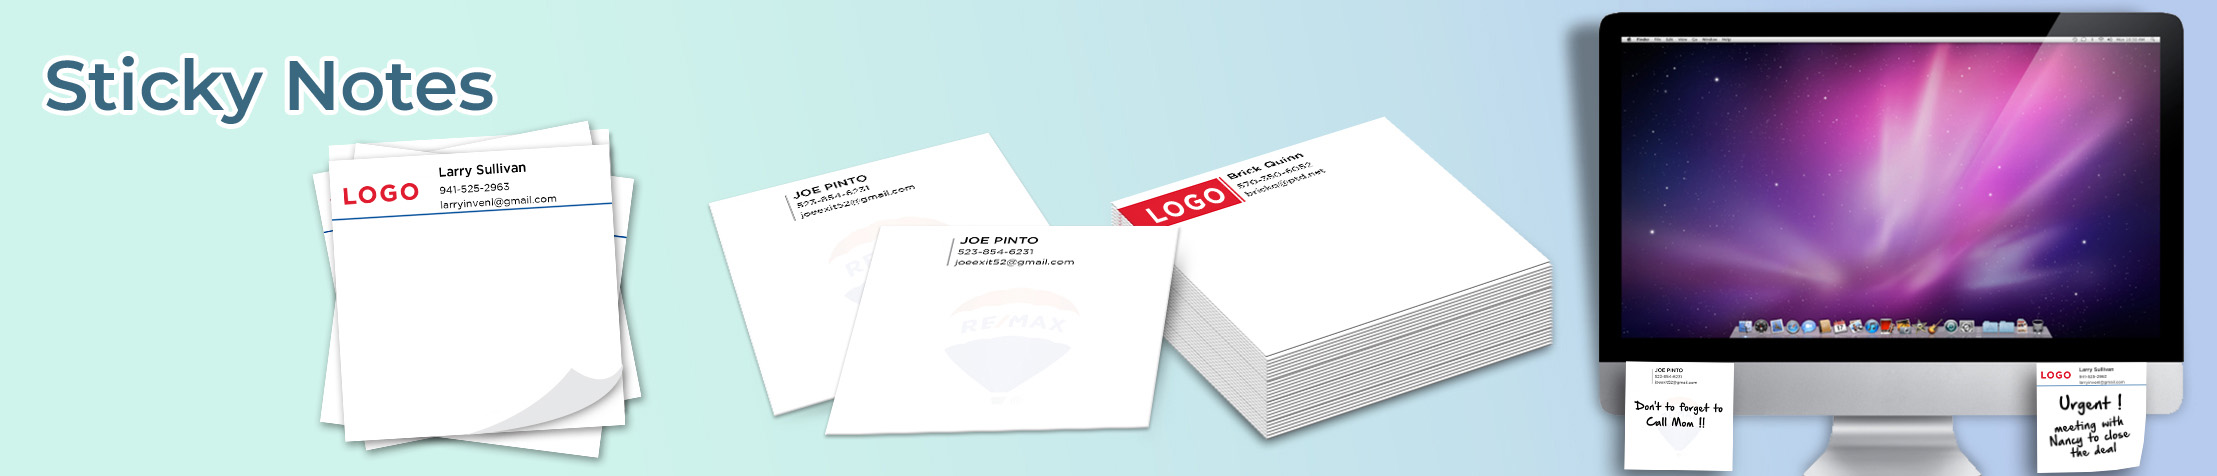 RE/MAX Real Estate Sticky Notes - RE/MAX  personalized realtor post it note pads | BestPrintBuy.com